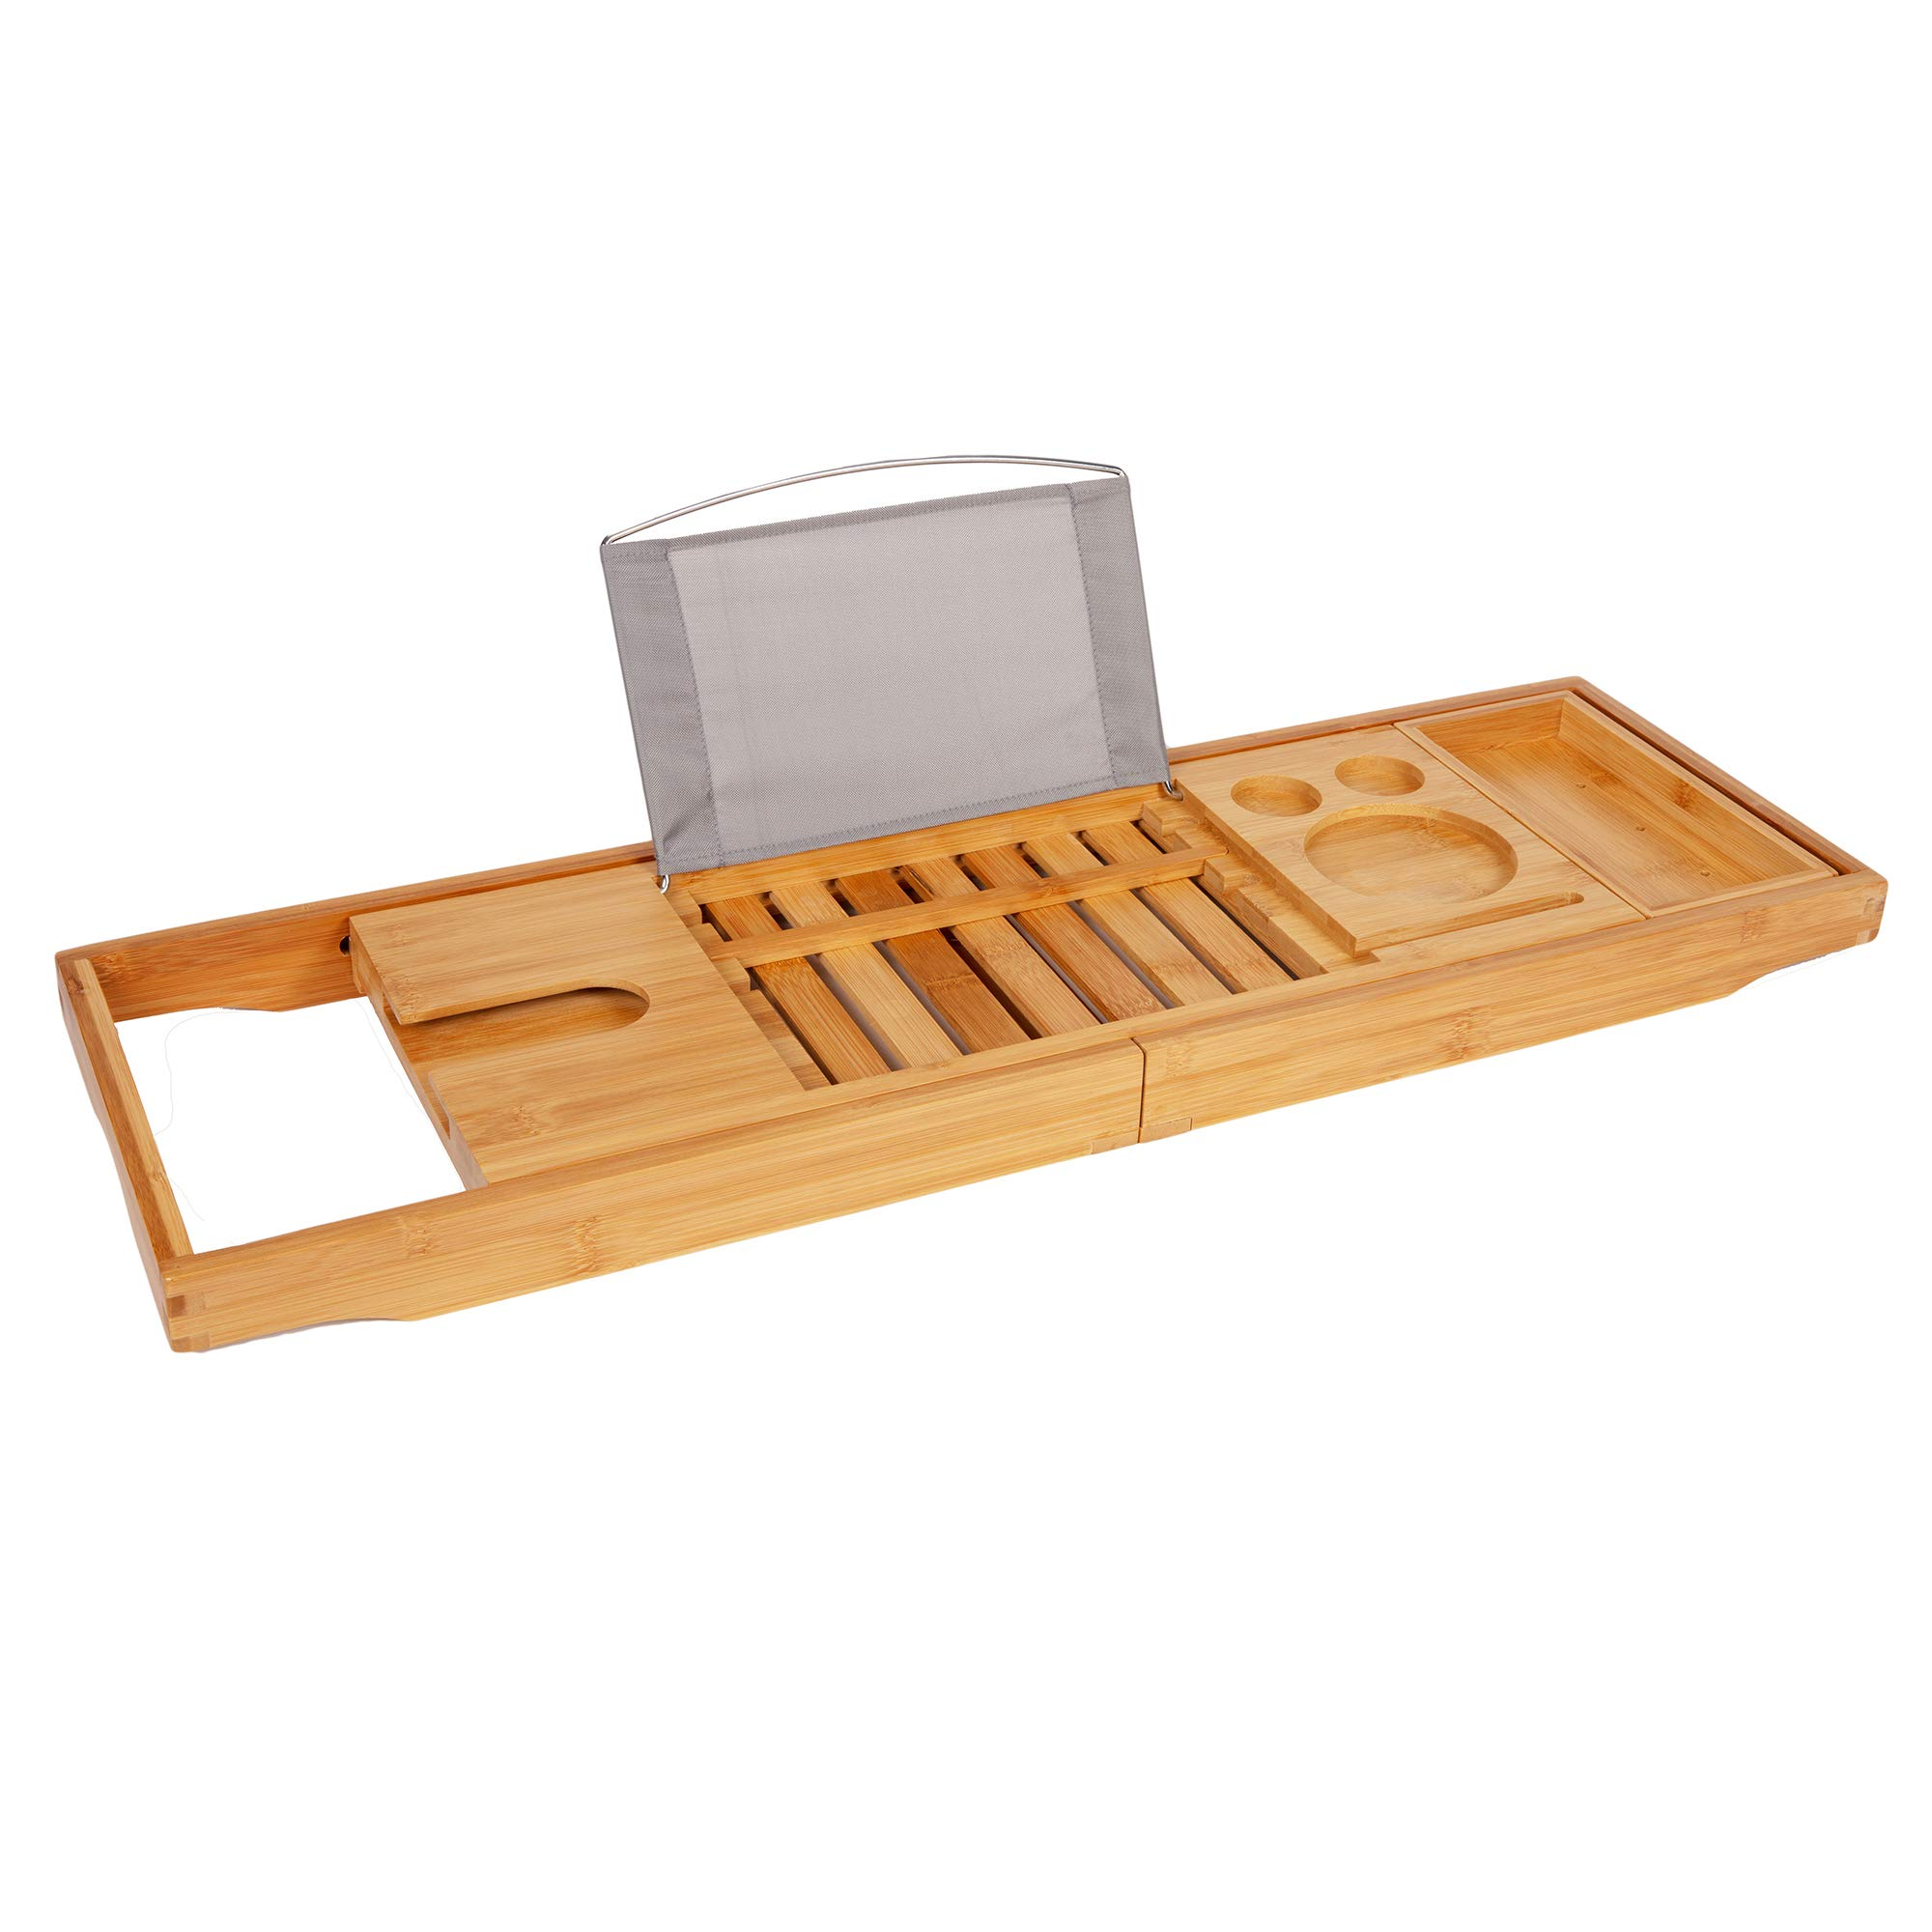 TRIXES Premium Bamboo Bath Caddy - Extendable Luxury Home Relaxation Spa Experience for Bathrooms - Wine Holder - Book Stand Rack Phone Slot - Candles - Side Tray -Compatible with Tablets E-Readers